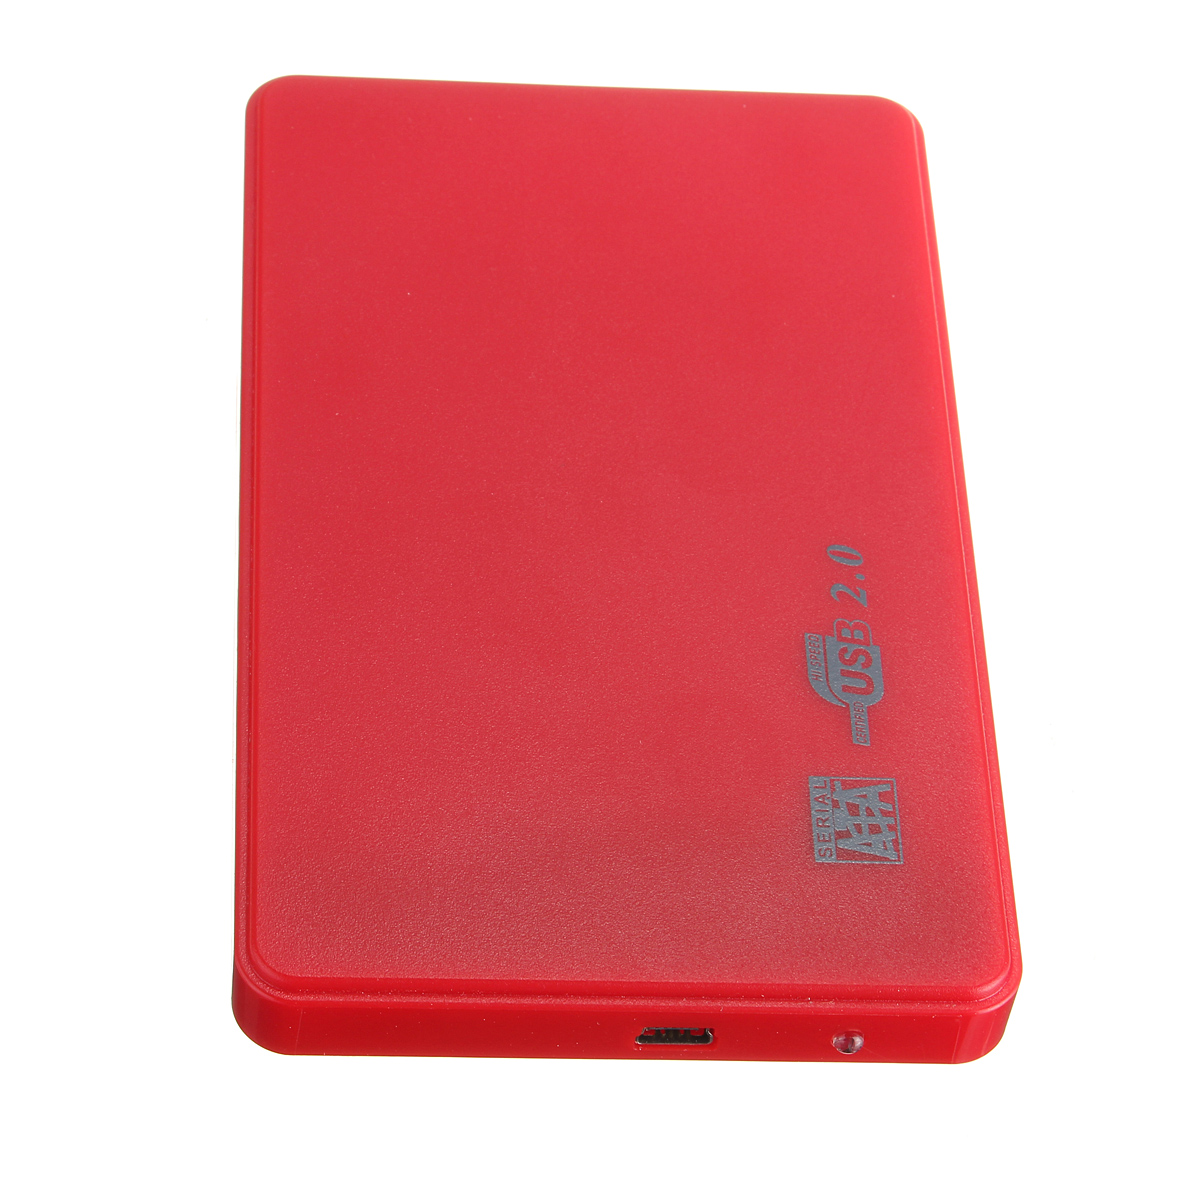 ... Disk USB 2.0 Slim Box Case Esterno AdattatoreDrive+Cavo Red (EXPORT